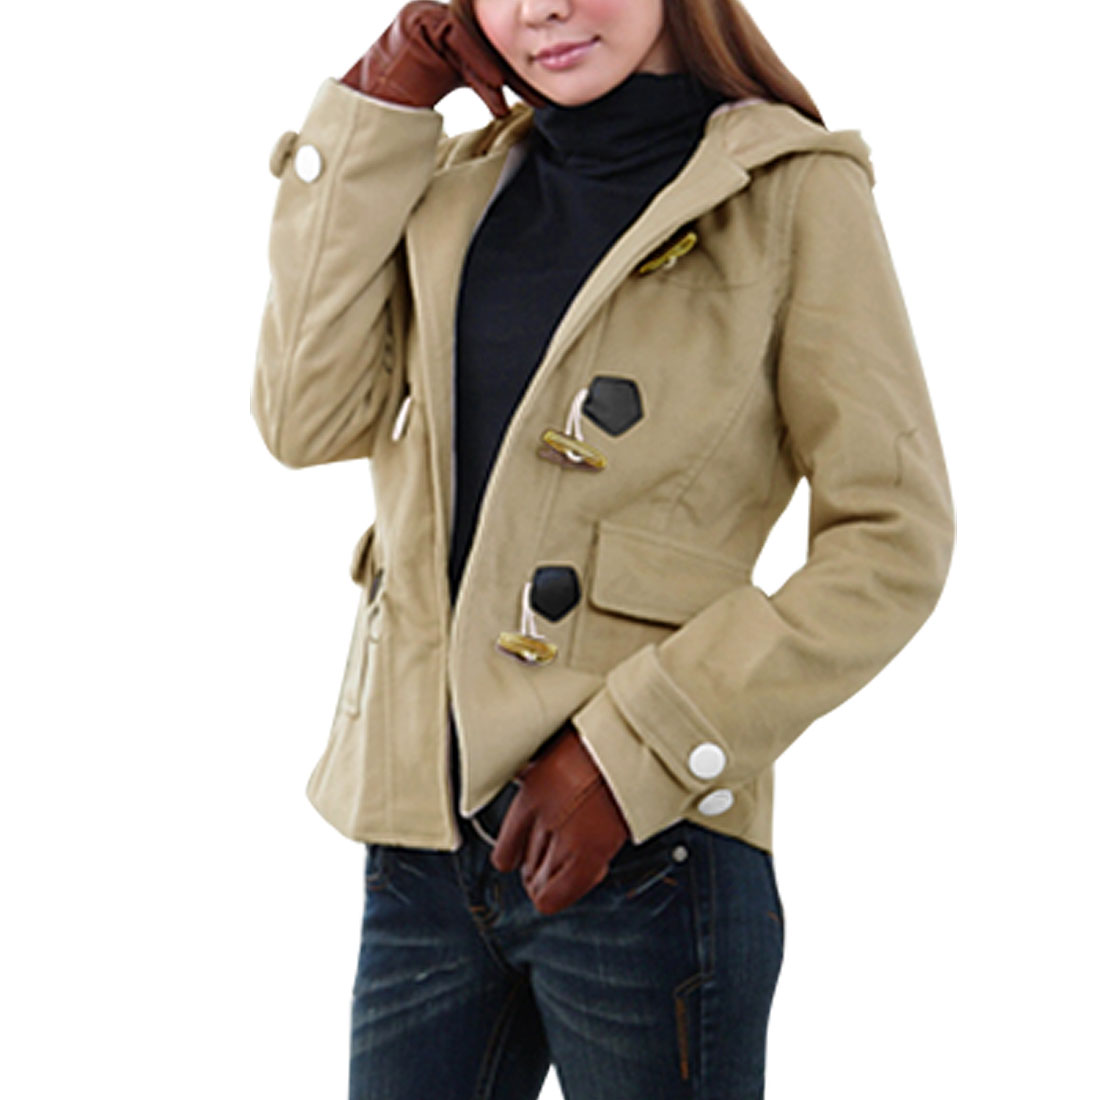 Ladies Long Sleeve Toggle Button Patch Pocket Hooded Jacket Beige Coat XS